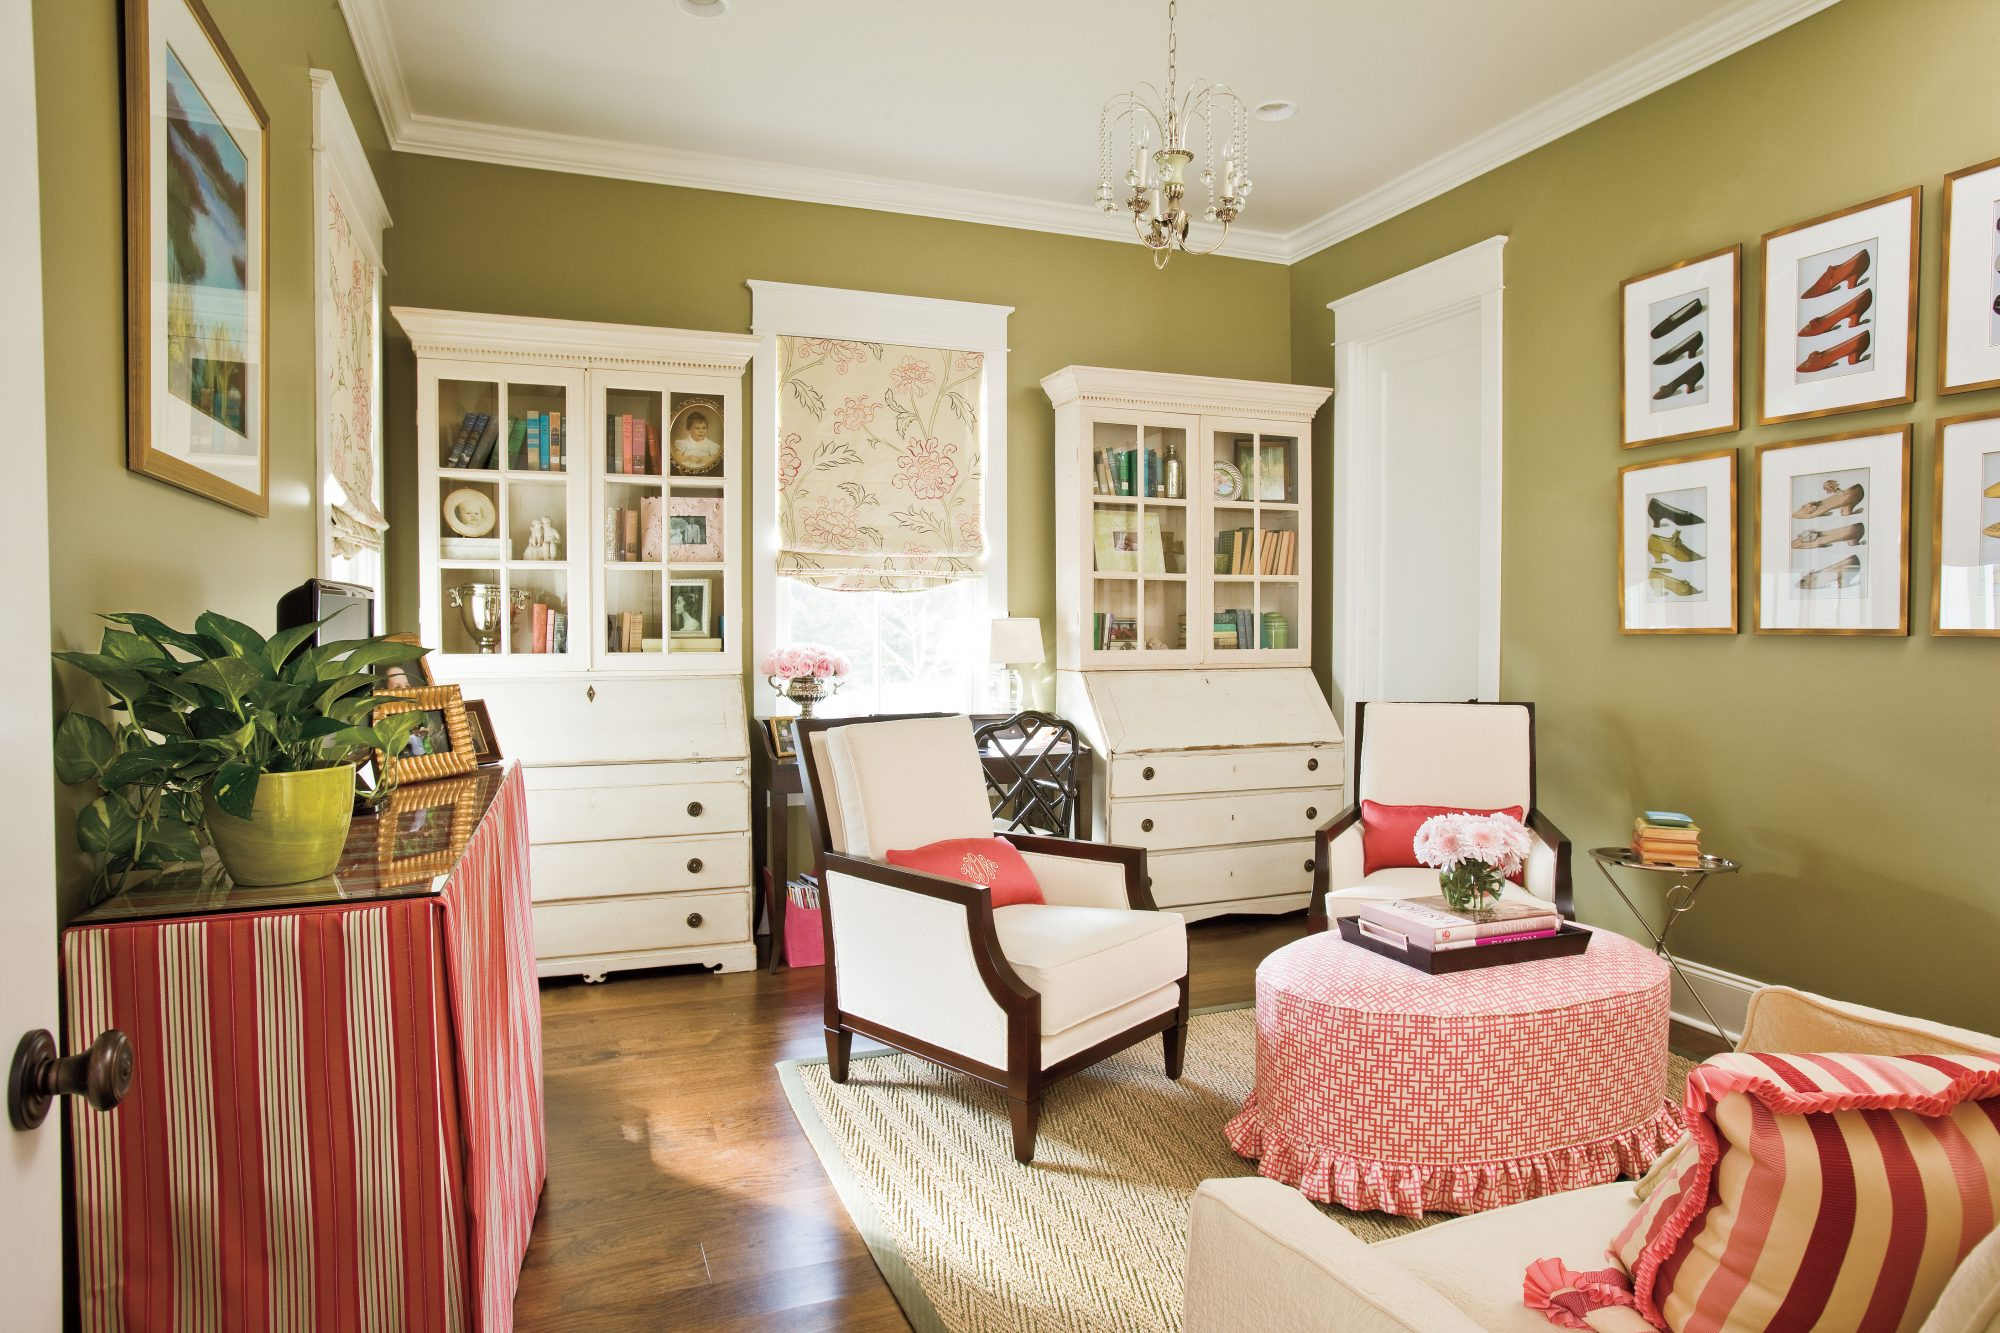 Antique and New Furniture Blend